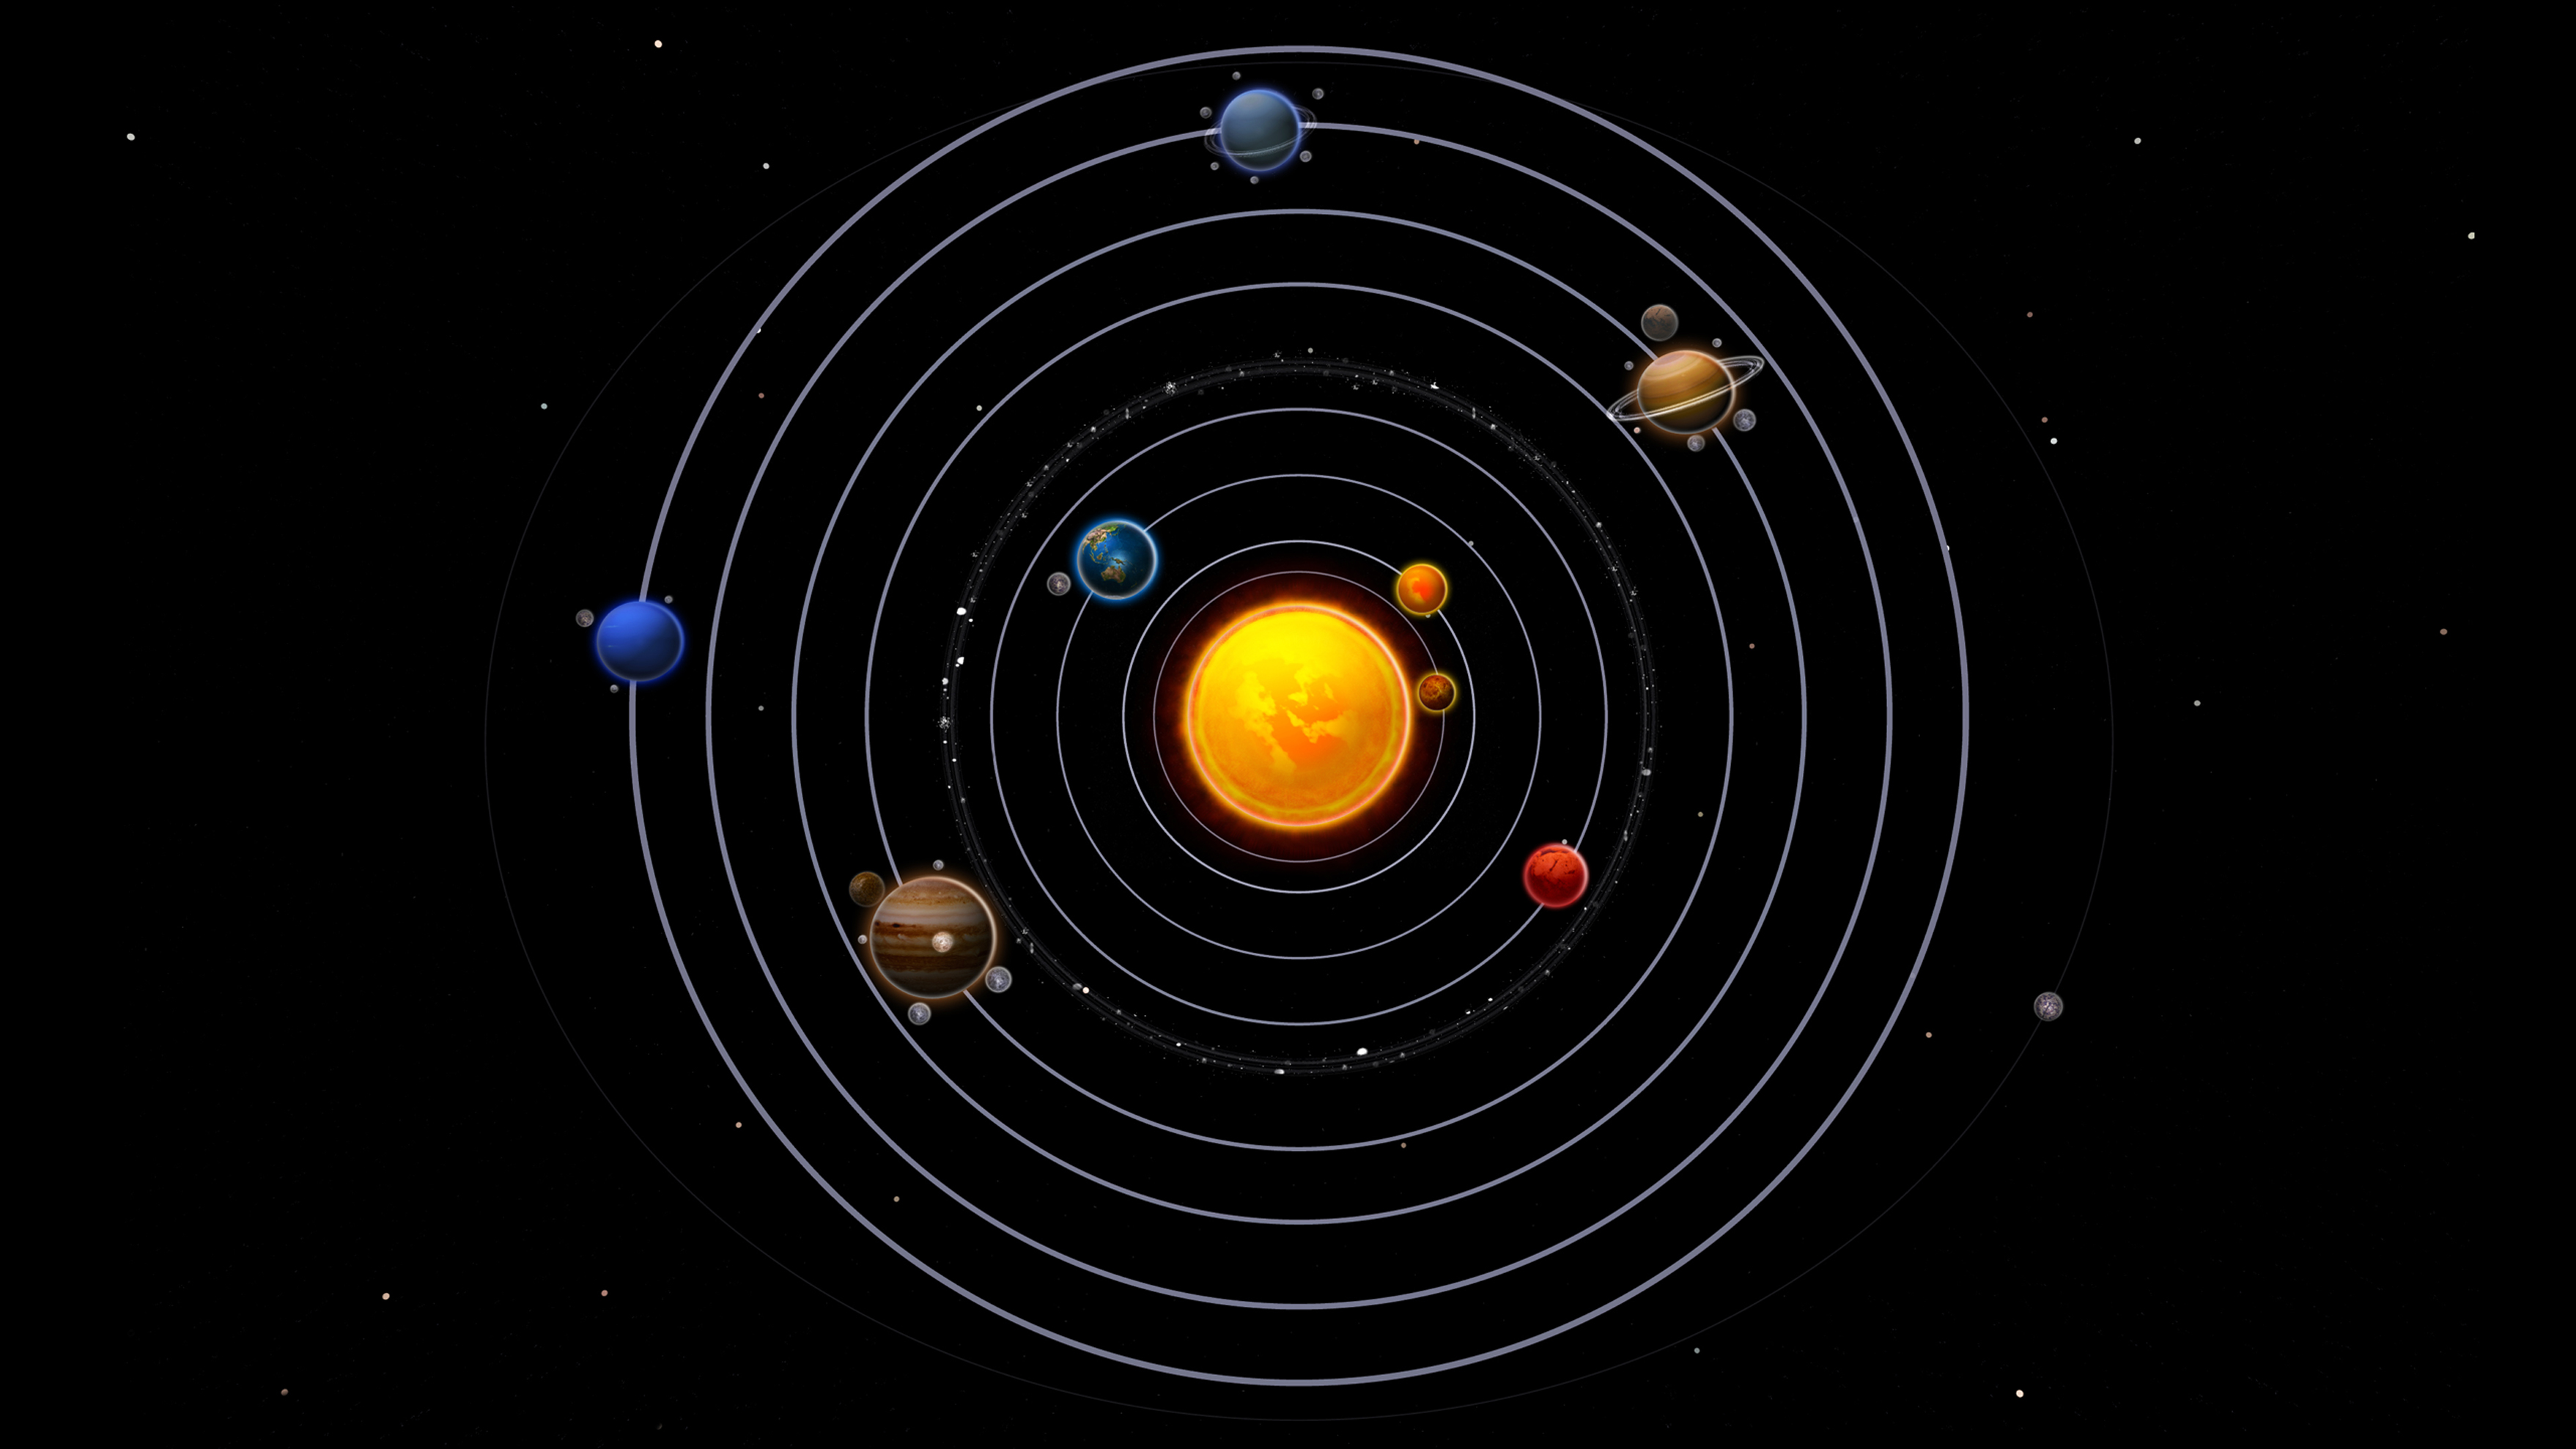 How To Get Moving Wallpapers On Iphone 4 Solar System 845492 Wallpapers13 Com